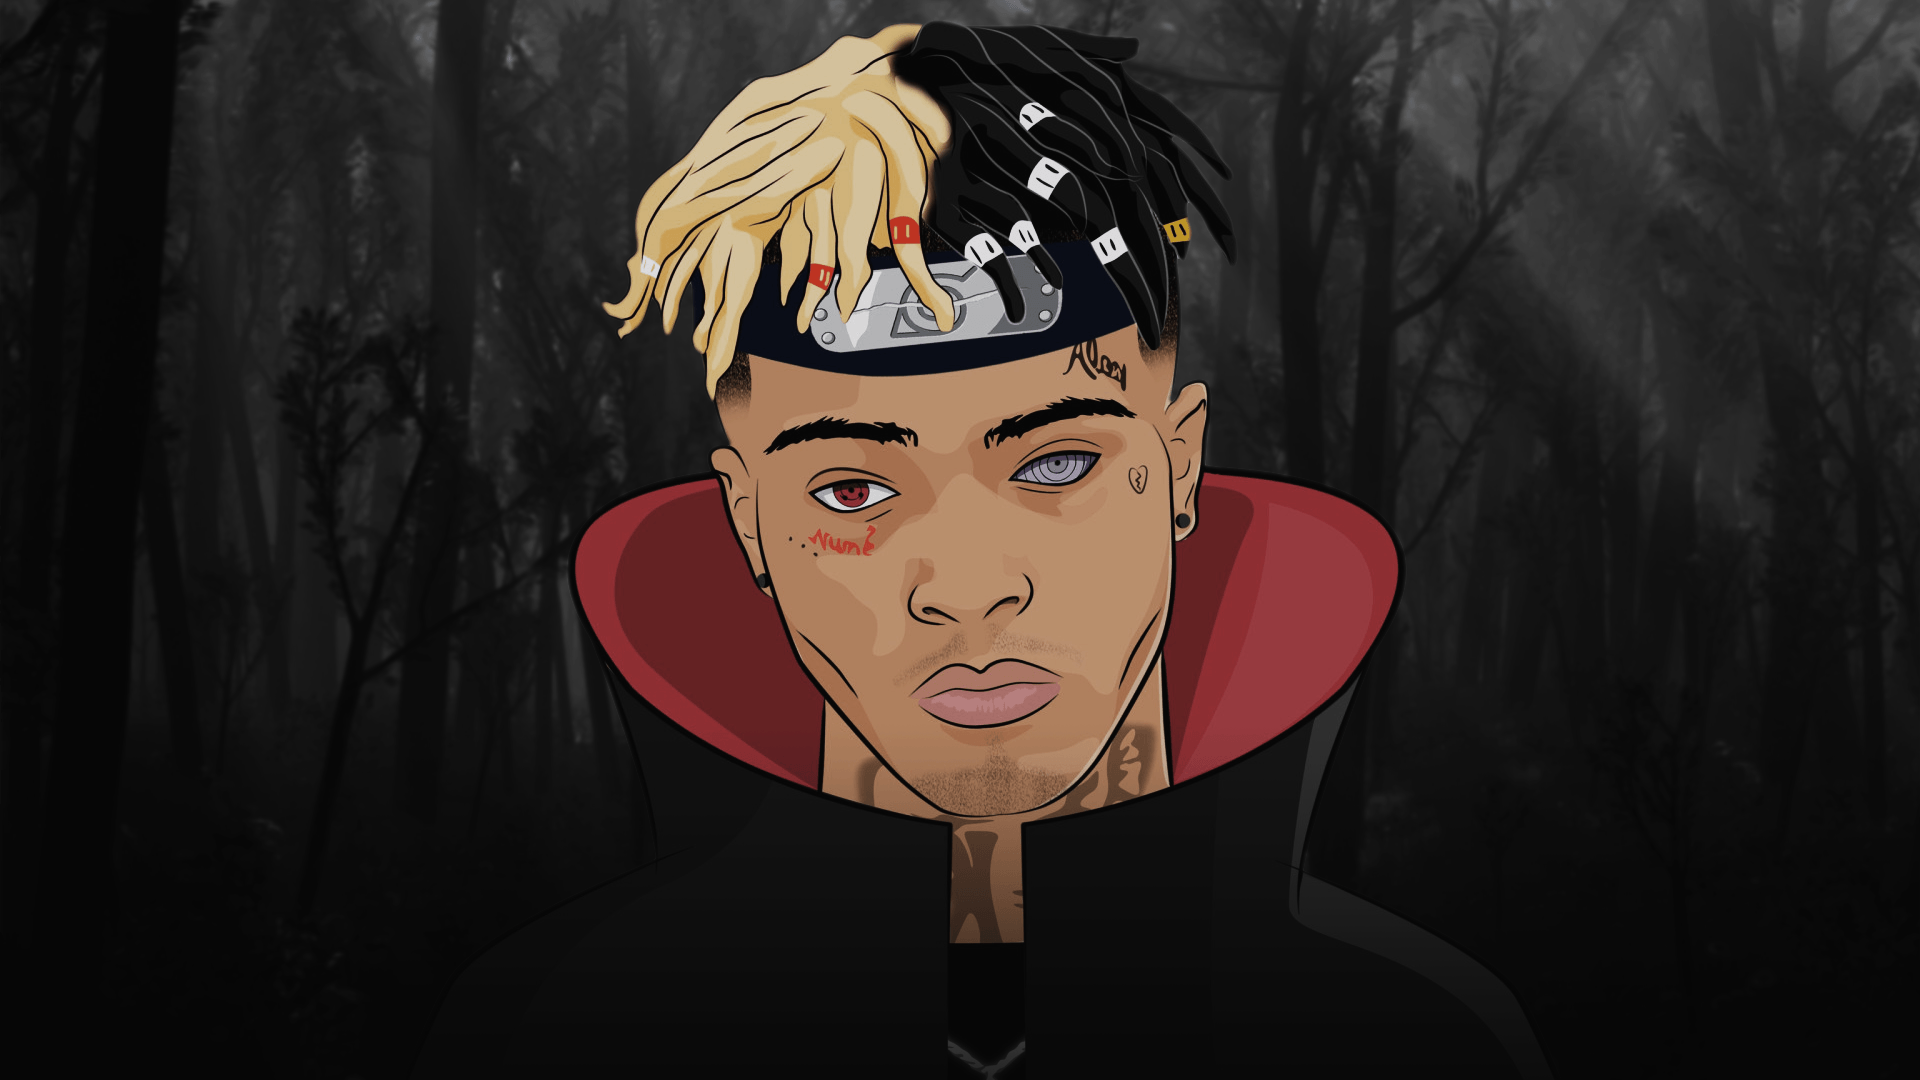 1920x1080 XXXTENTACION | PS4Wallpapers.com